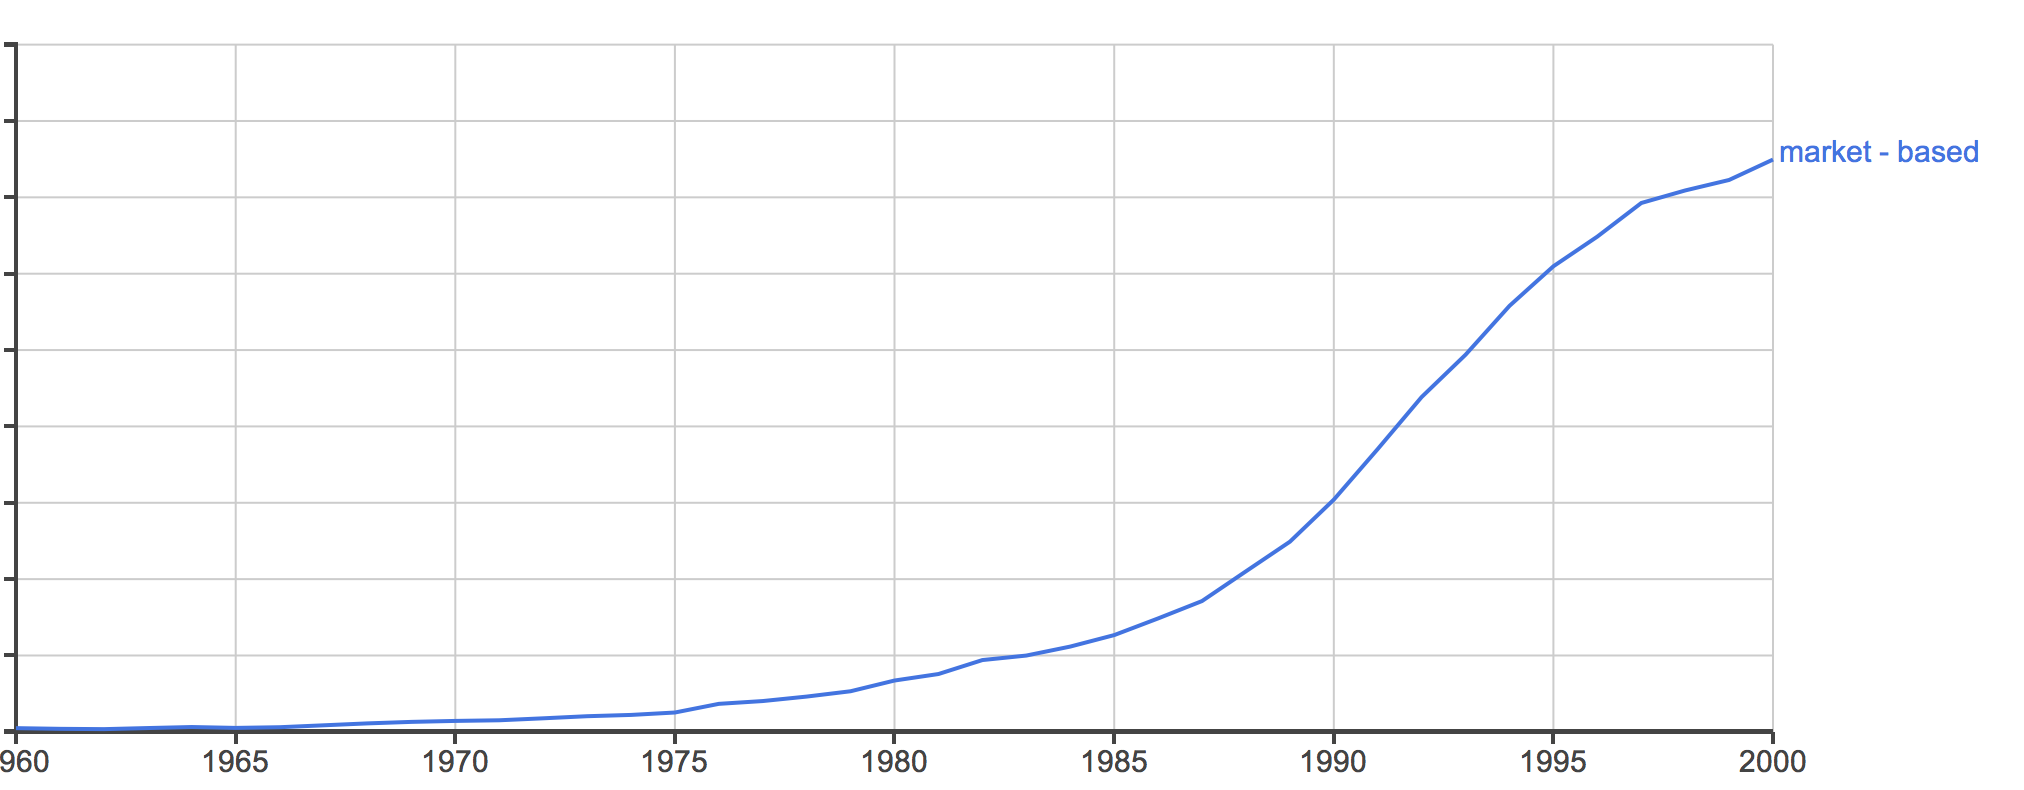 Market-based ngram newest